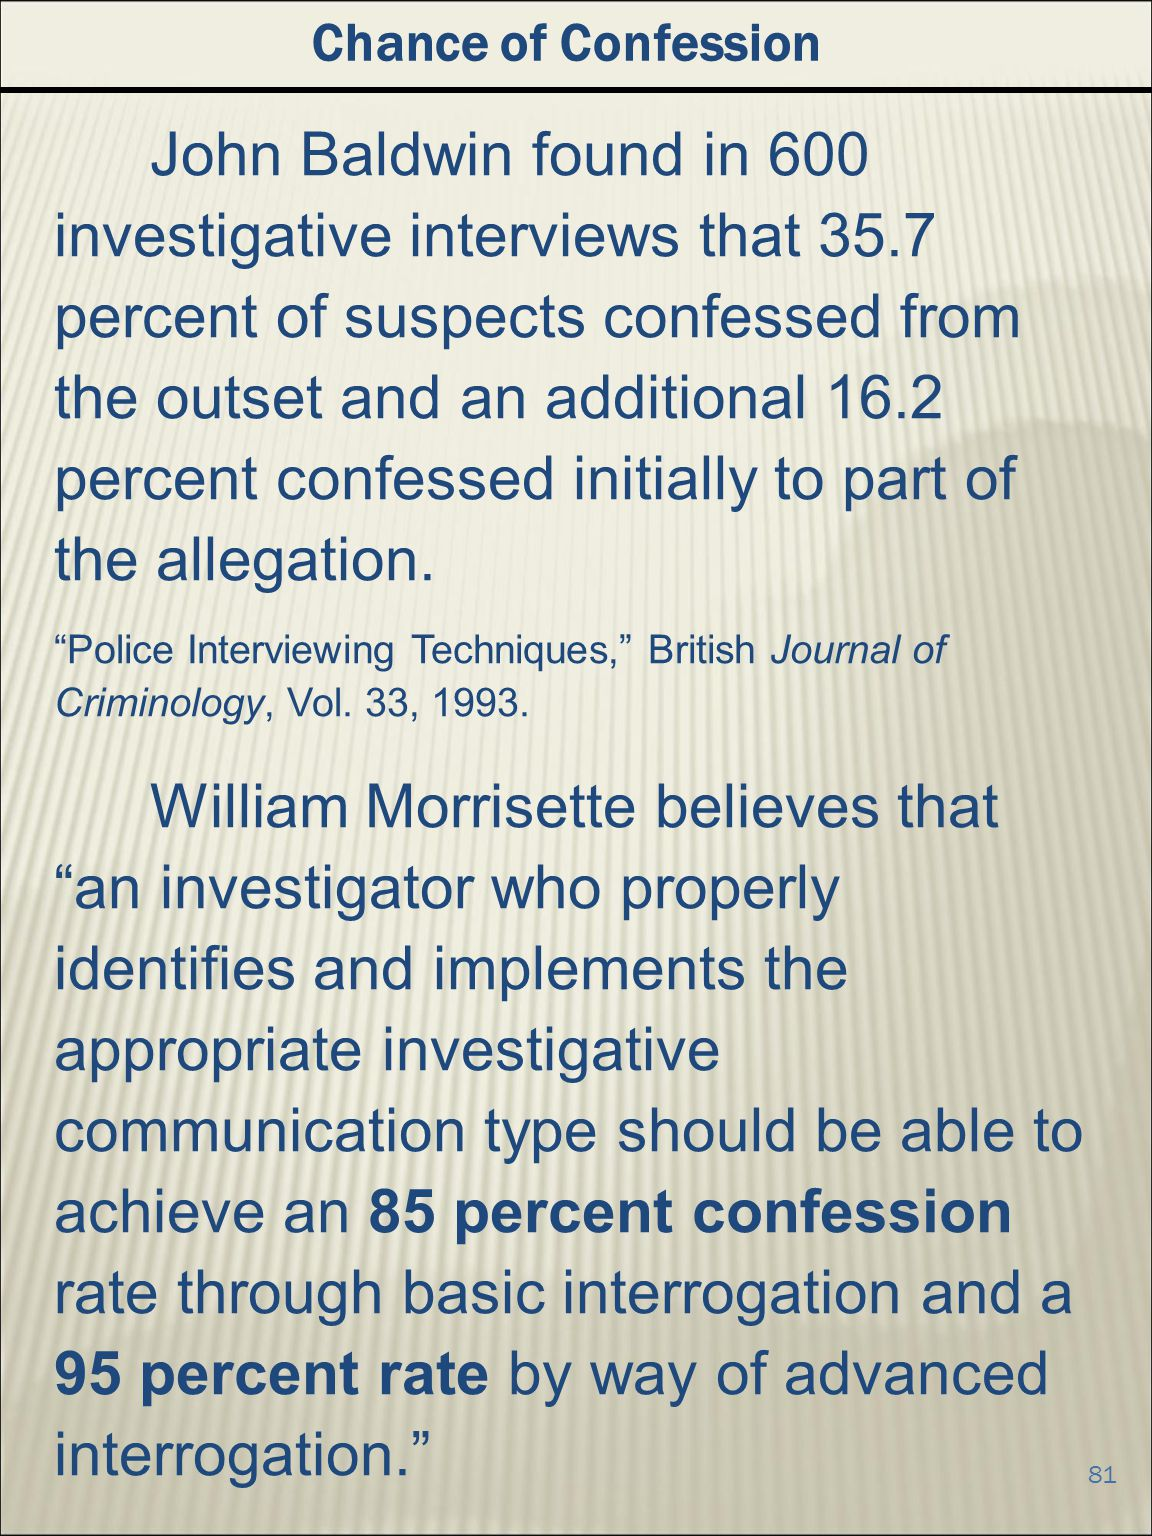 81 Chance of Confession John Baldwin found in 600 investigative interviews that 35.7 percent of suspects confessed from the outset and an additional 16.2 percent confessed initially to part of the allegation.